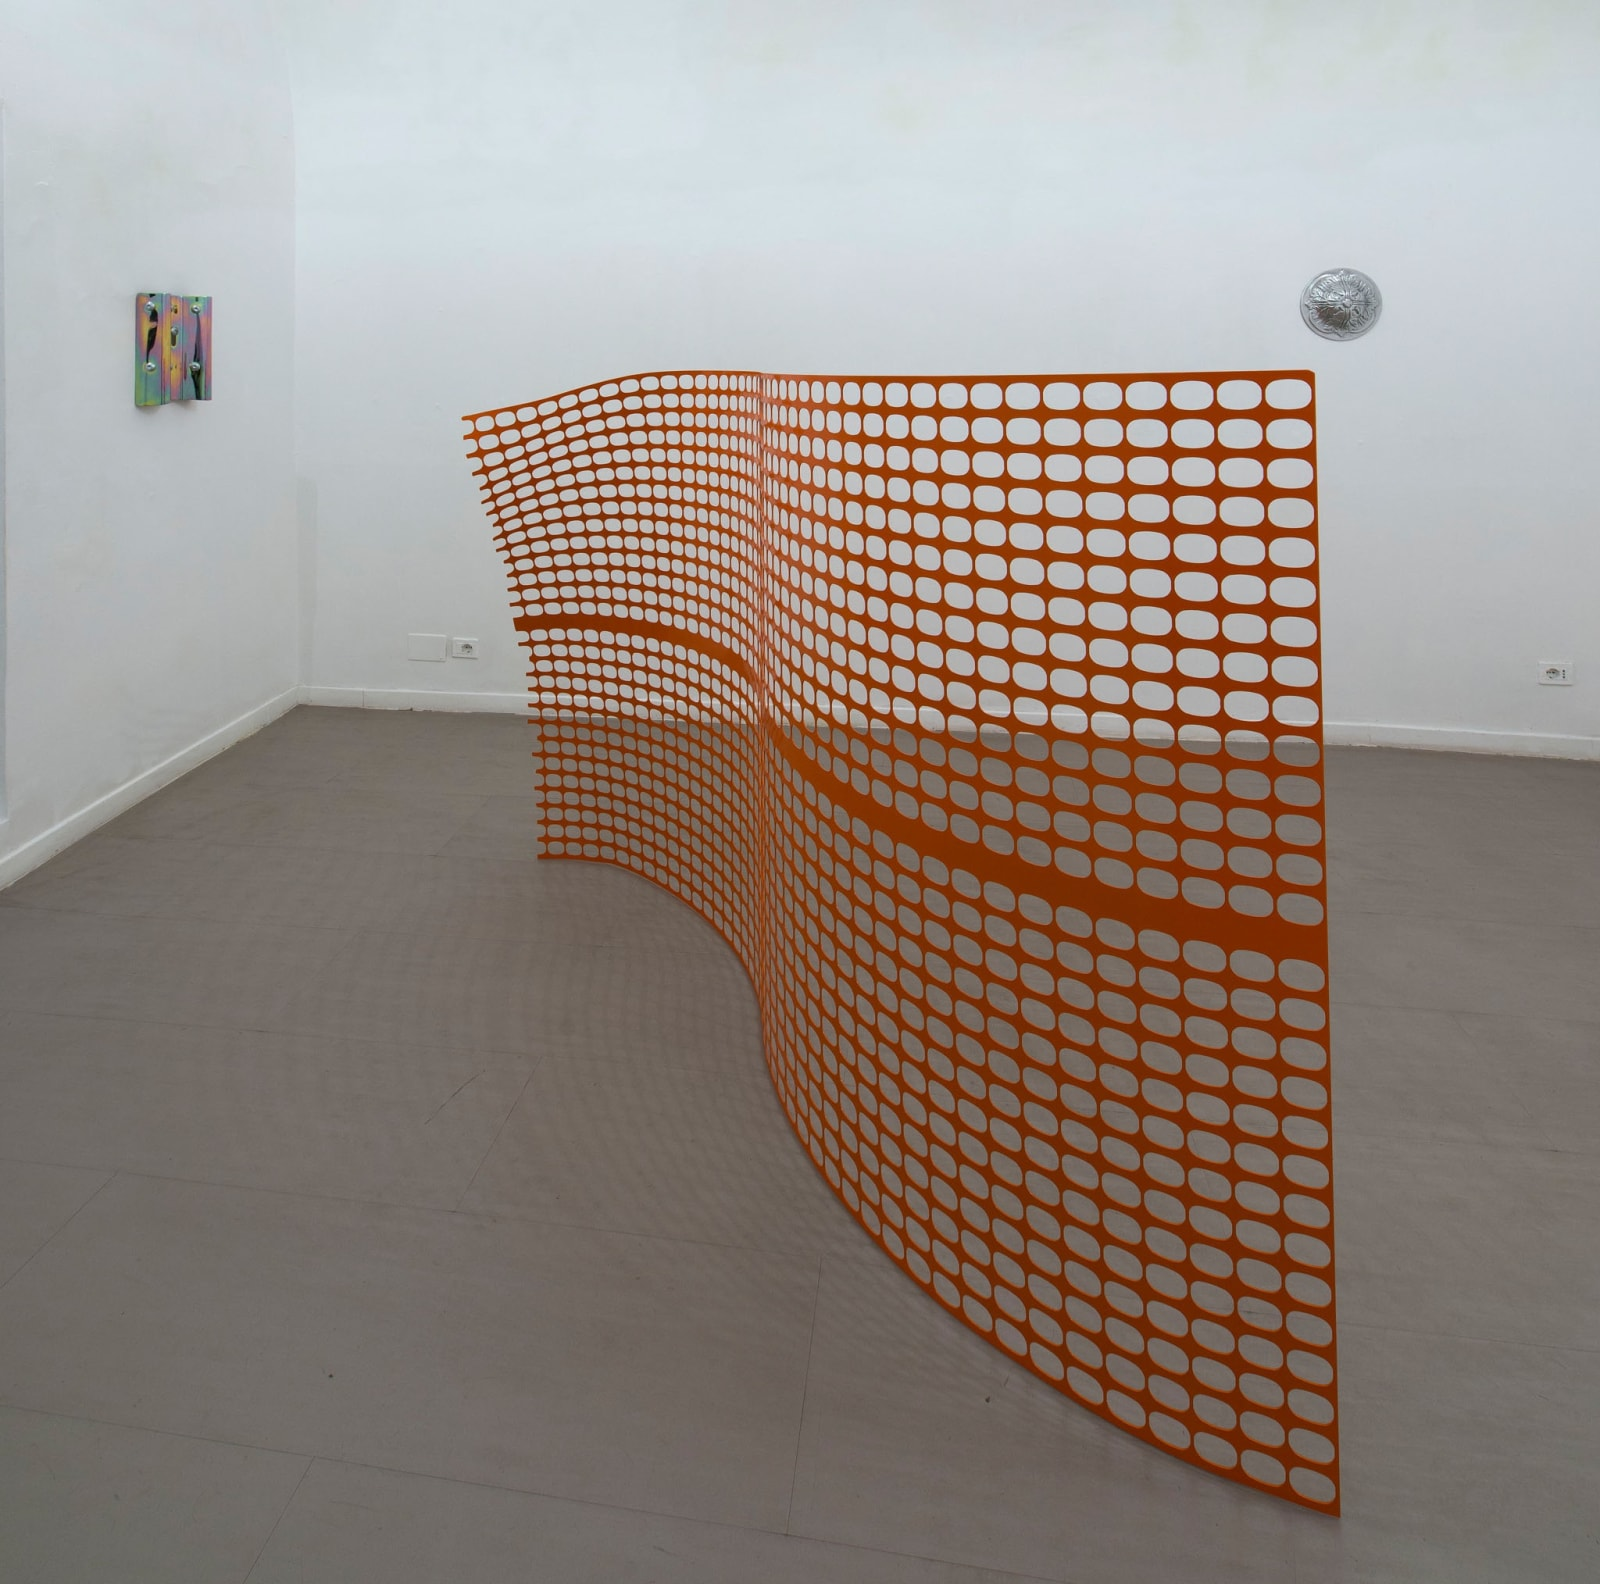 Giovanni de Cataldo, San Lorenzo, installation view at z2o Sara Zanin Gallery Rome